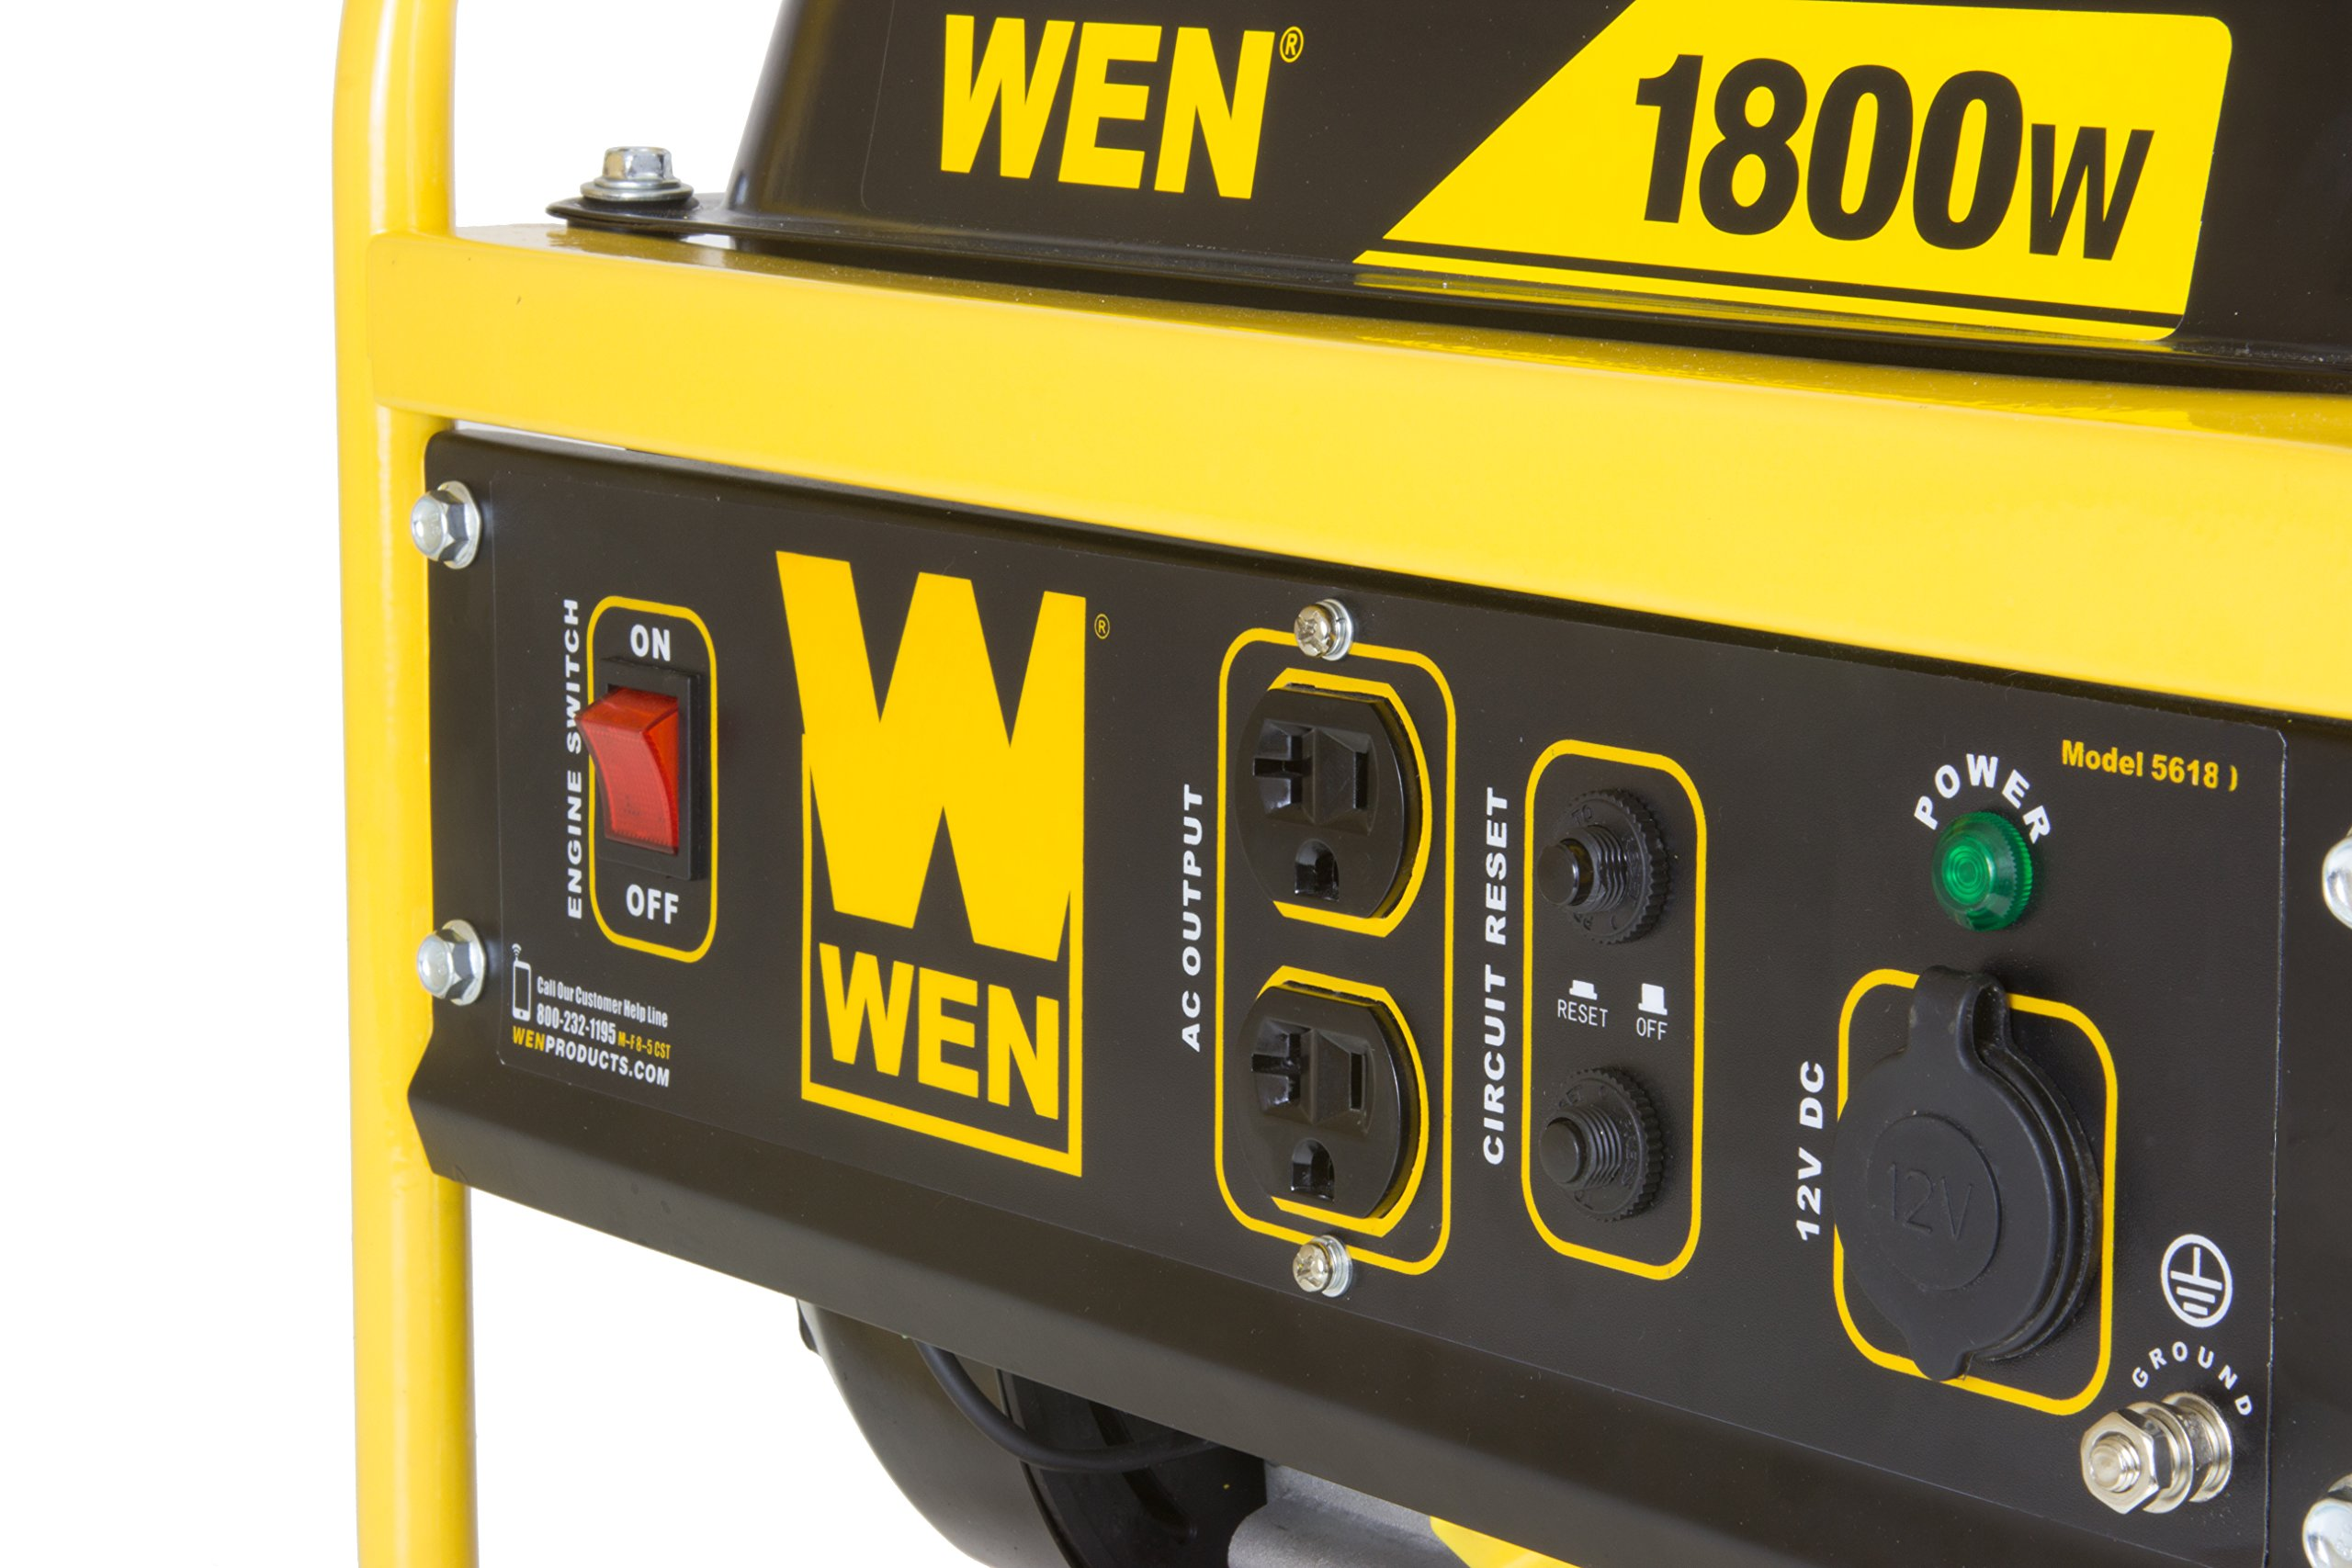 WEN 56180, 1500 Running Watts/1800 Starting Watts, Gas Powered Portable Generator, CARB Compliant by WEN (Image #2)